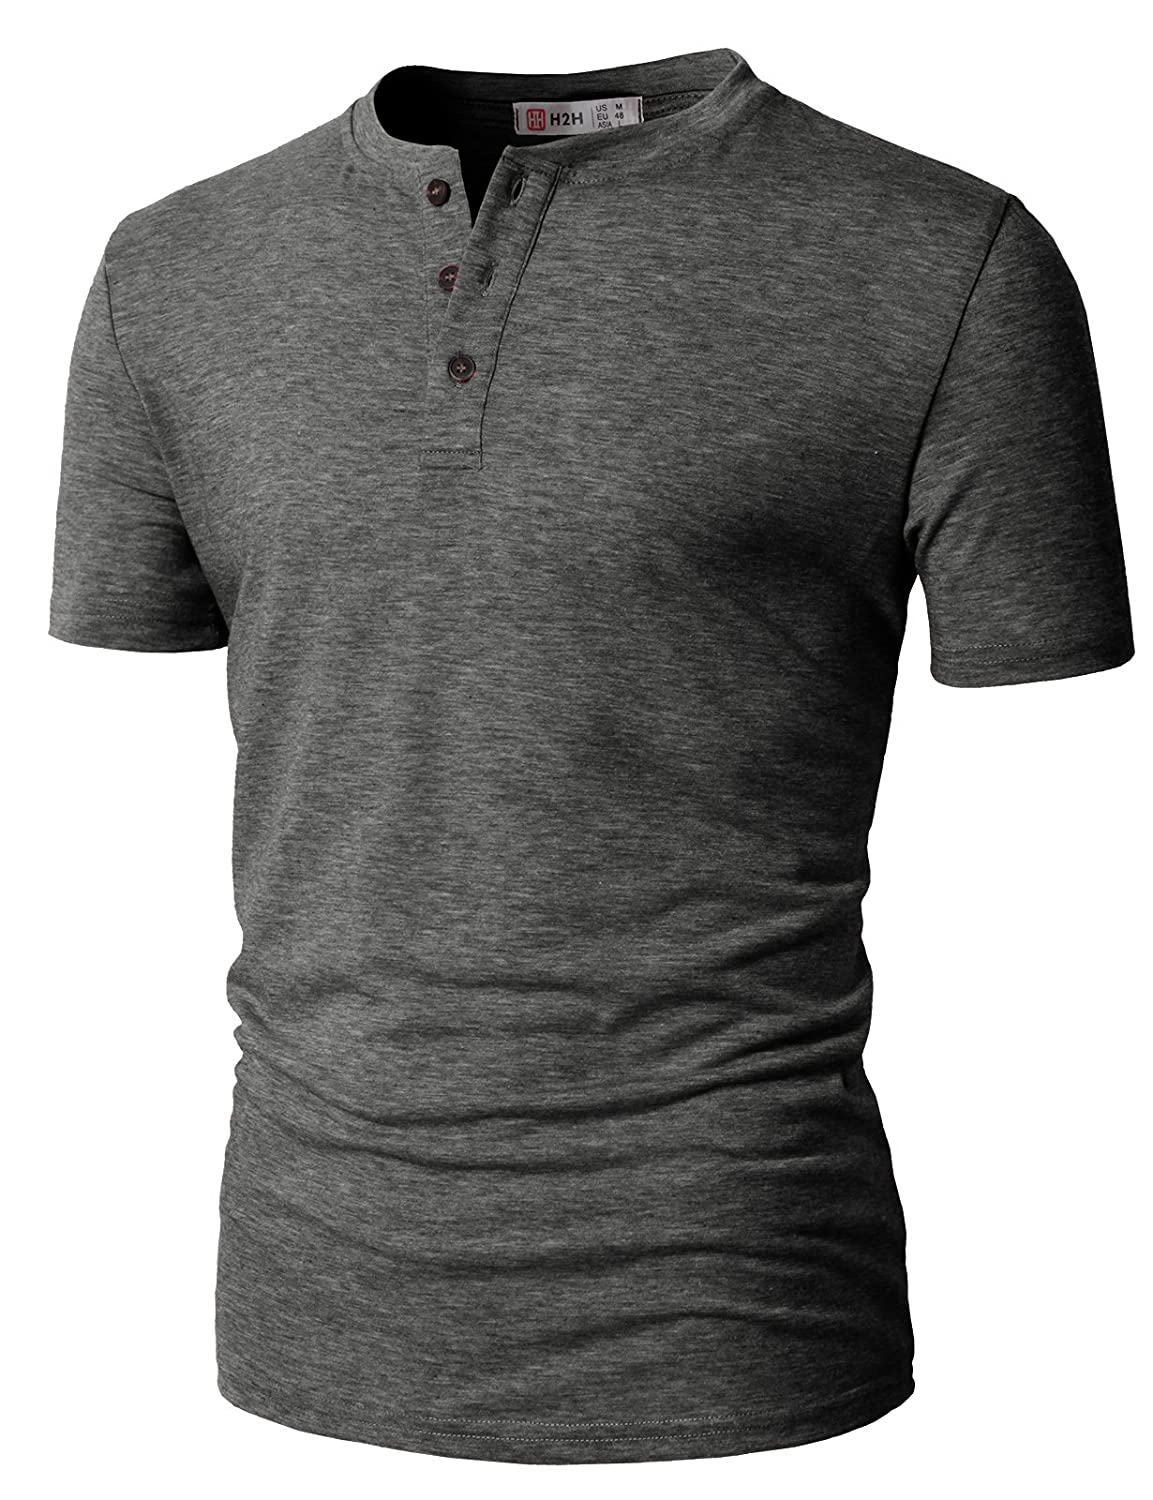 H2H Mens Fashion Casual Front Placket Basic Short Sleeve Henley T-Shirts #CMTTS0203